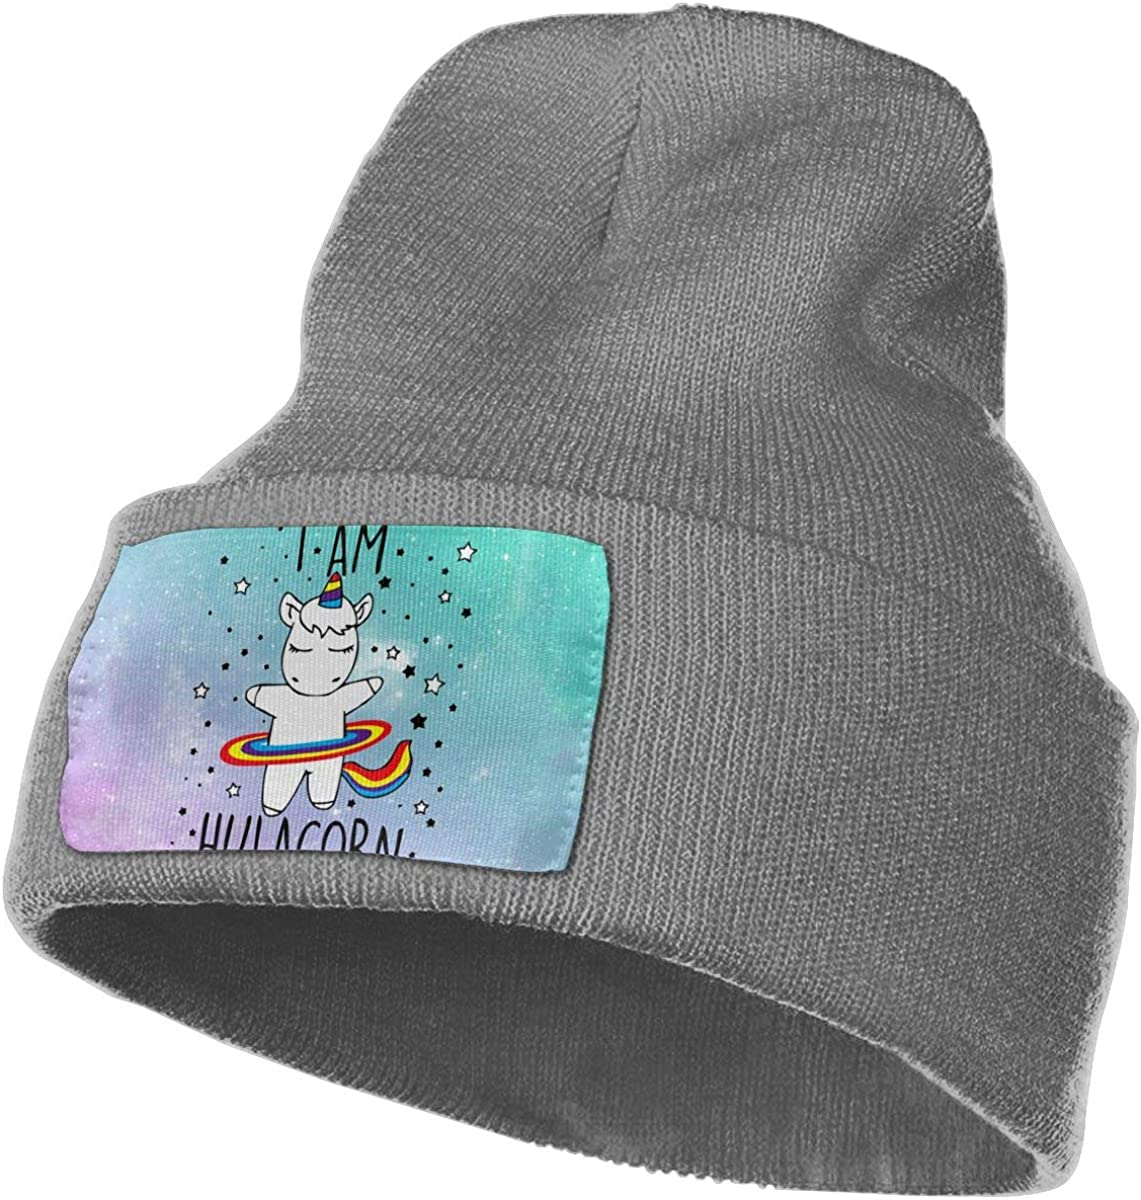 Unicorn I Am Hulacorn Hat for Men and Women Winter Warm Hats Knit Slouchy Thick Skull Cap Black